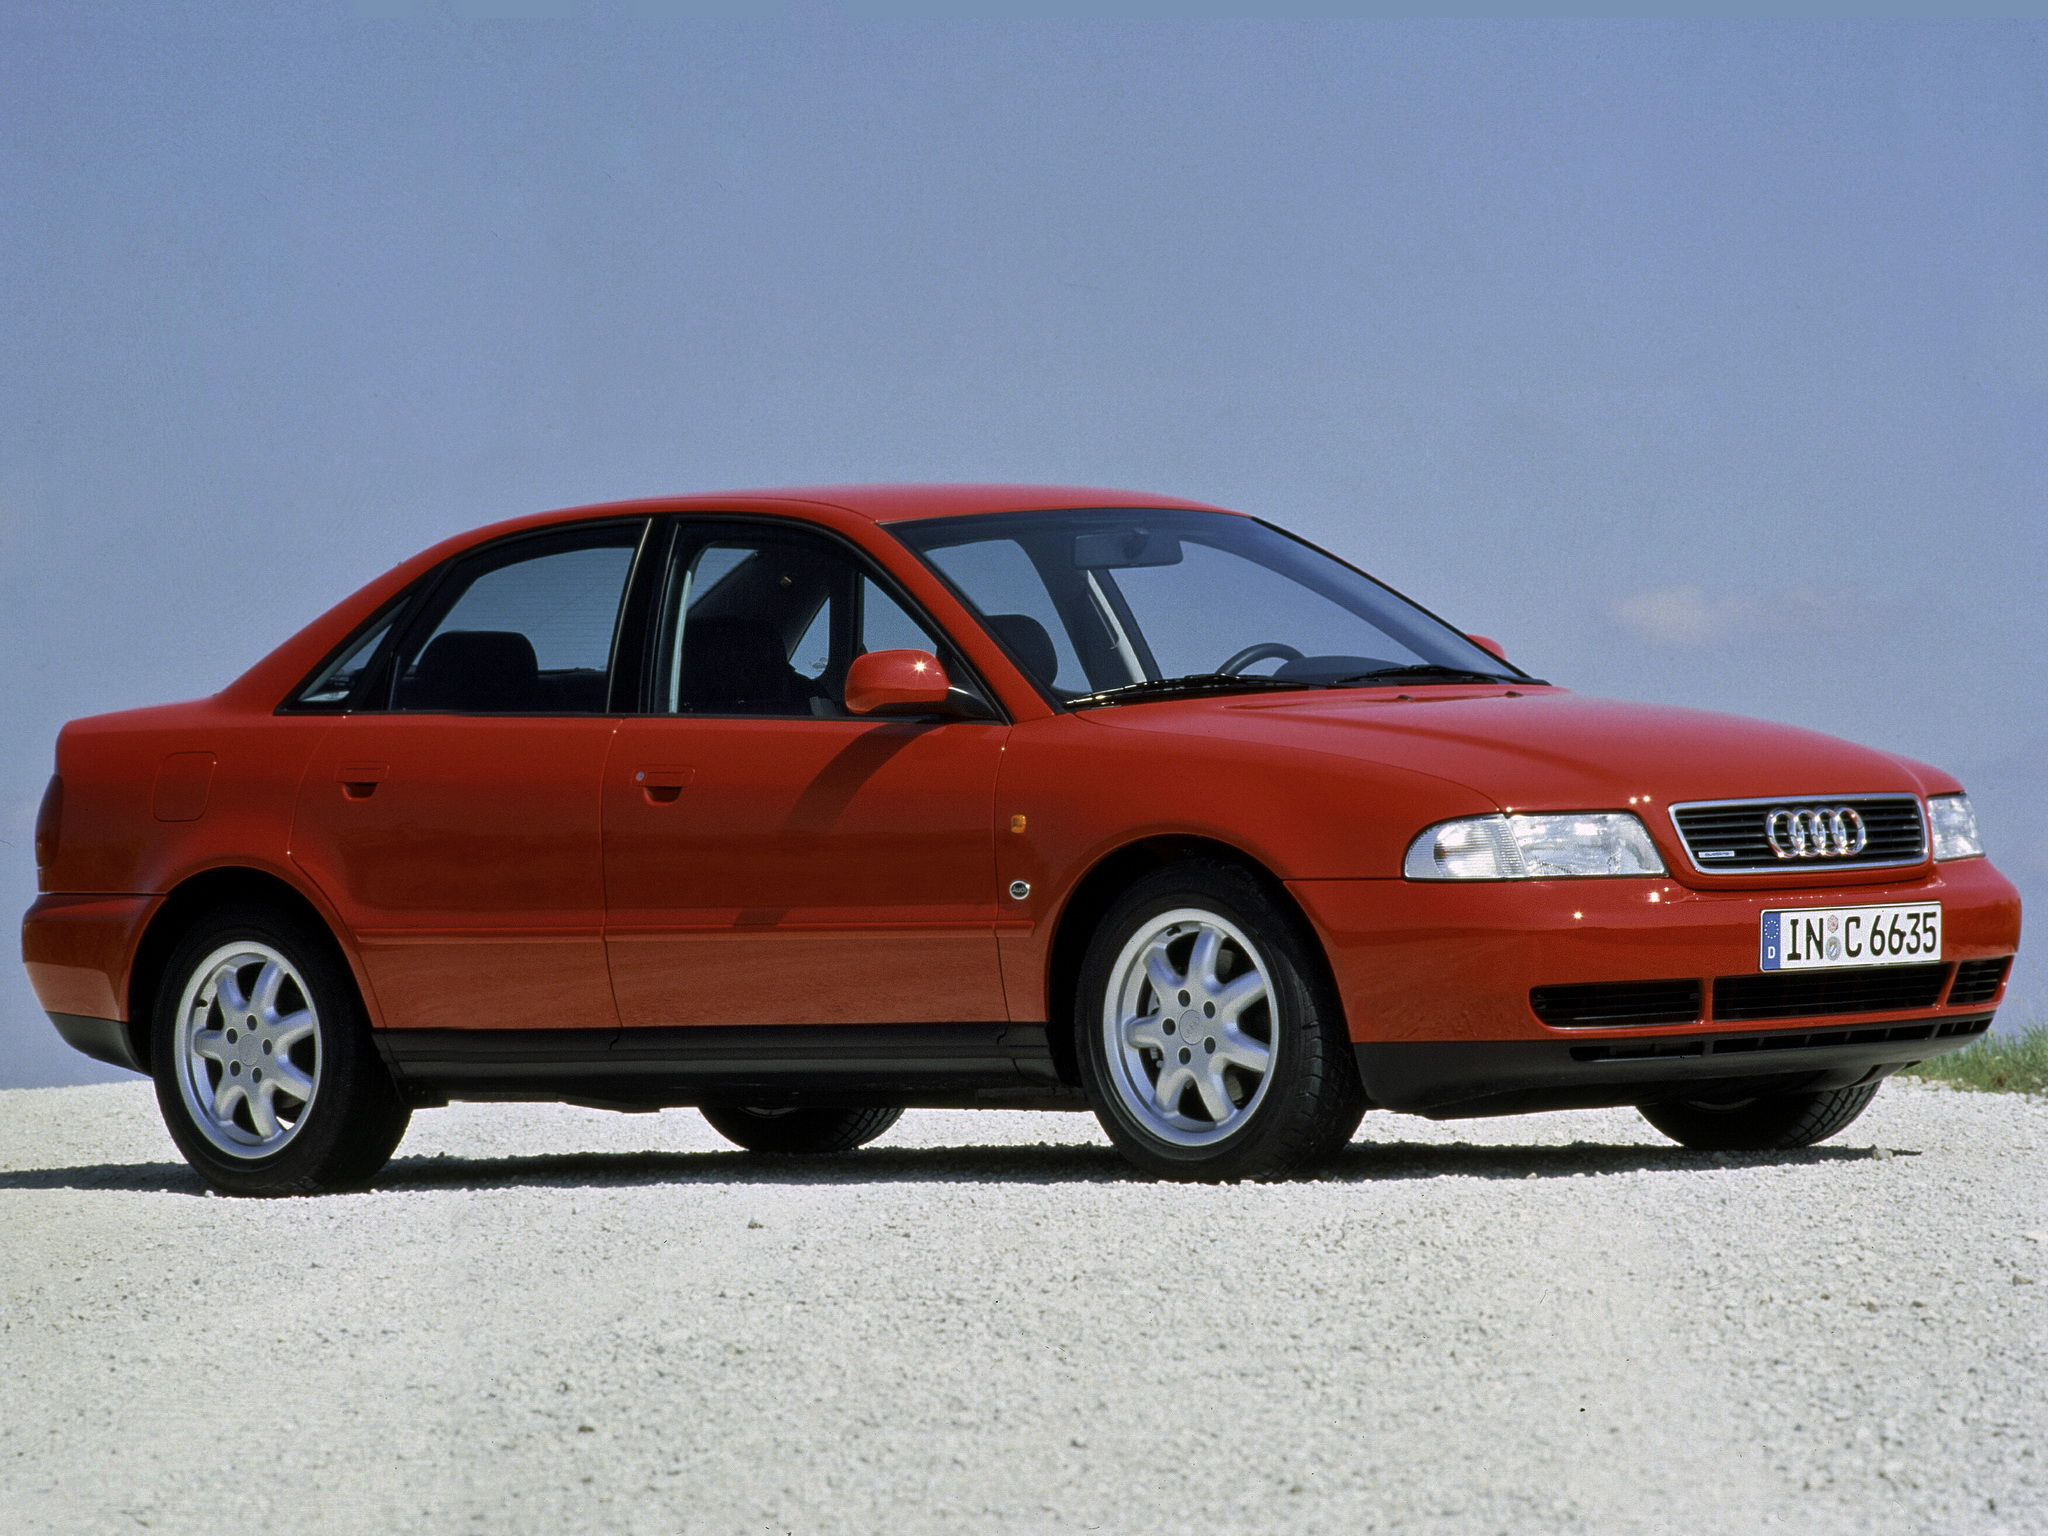 Super My perfect Audi A4. 3DTuning - probably the best car configurator! MJ86